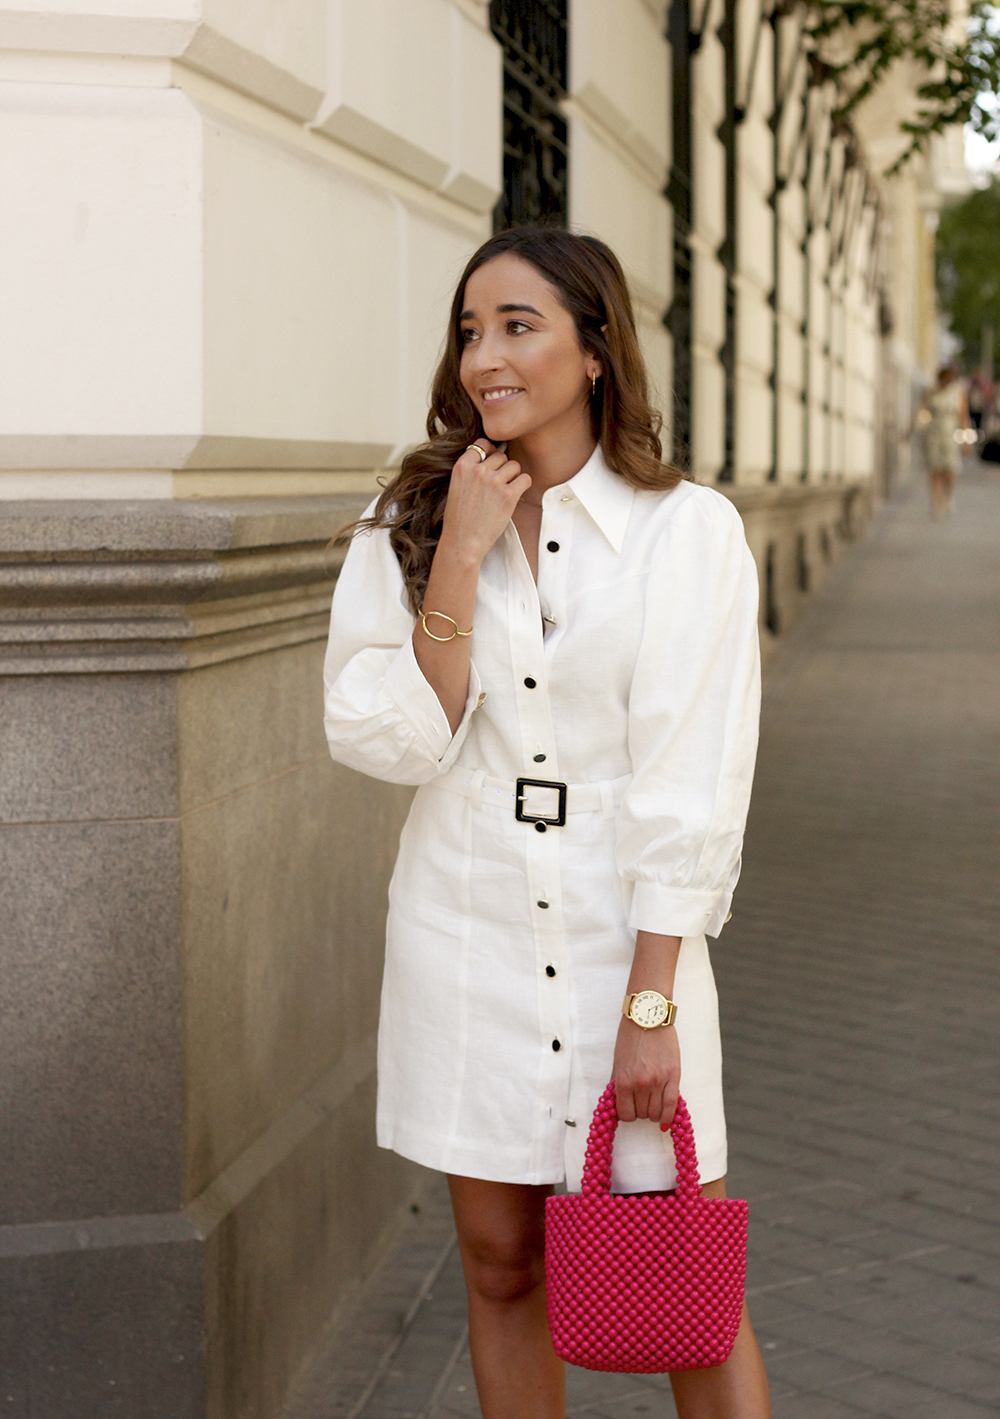 white linen dress pink bag nude sandals folli follie jewellery street style outfit 201910